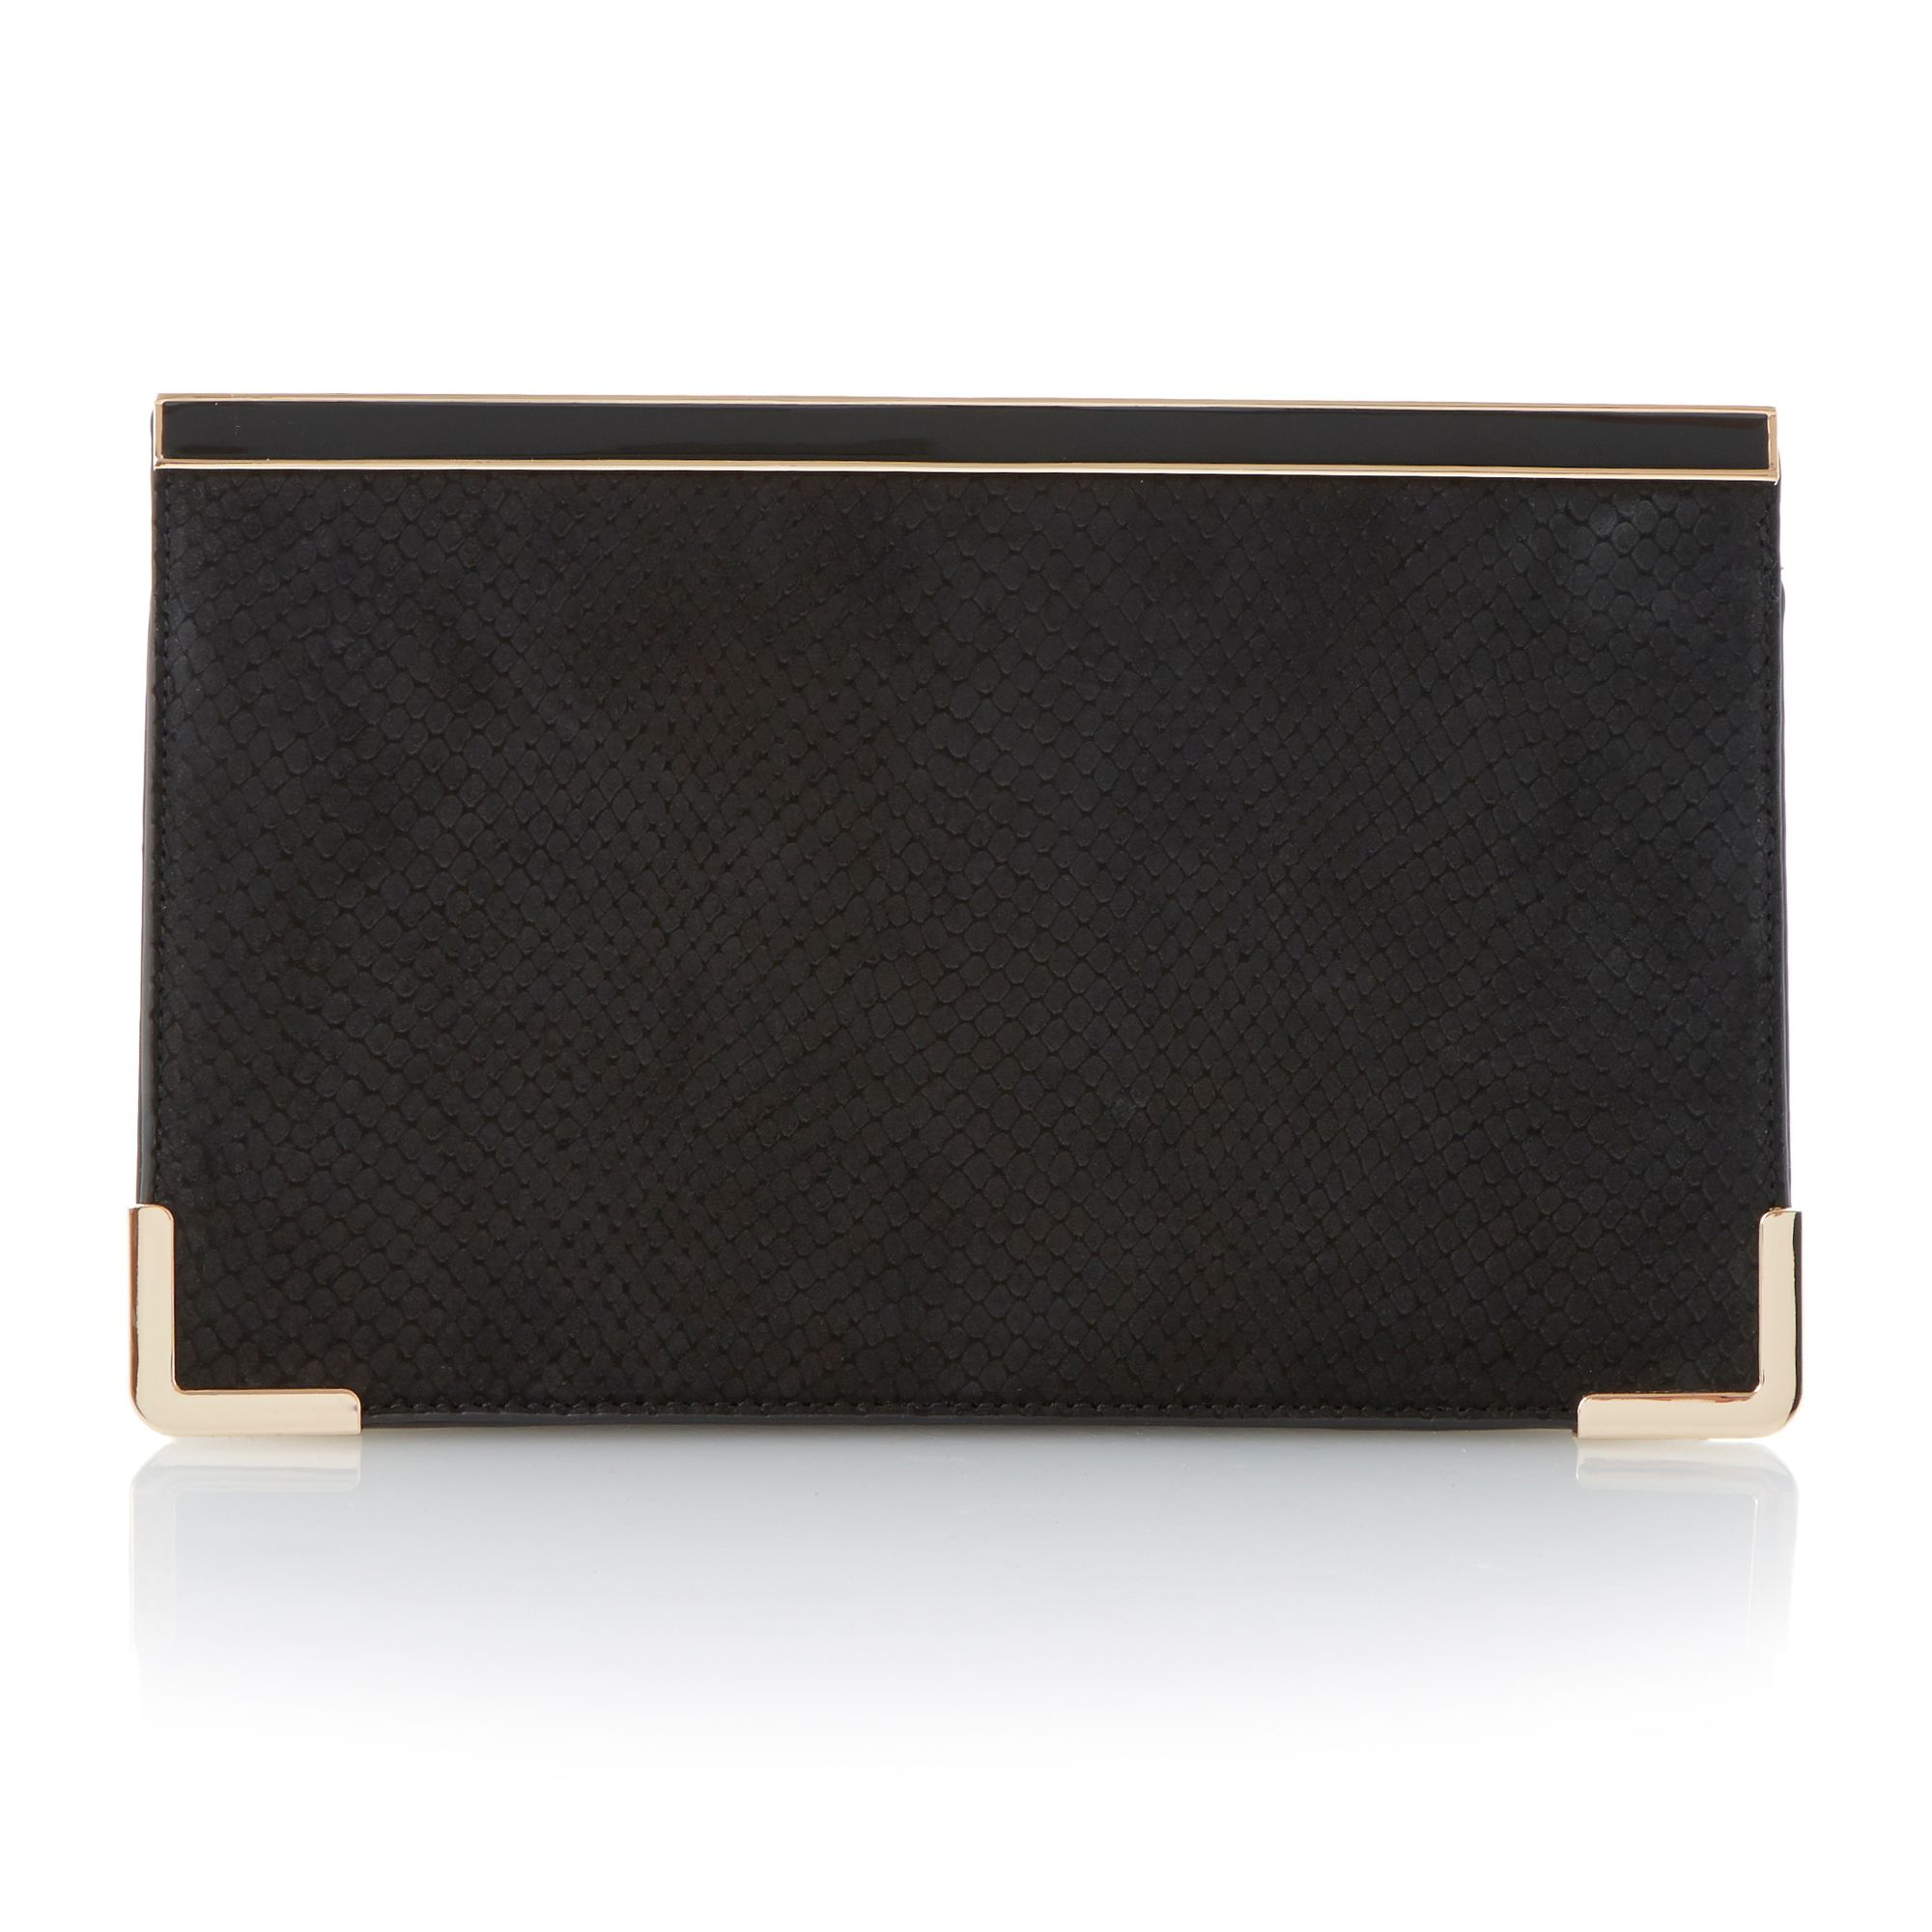 Buskies bar top clutch bag